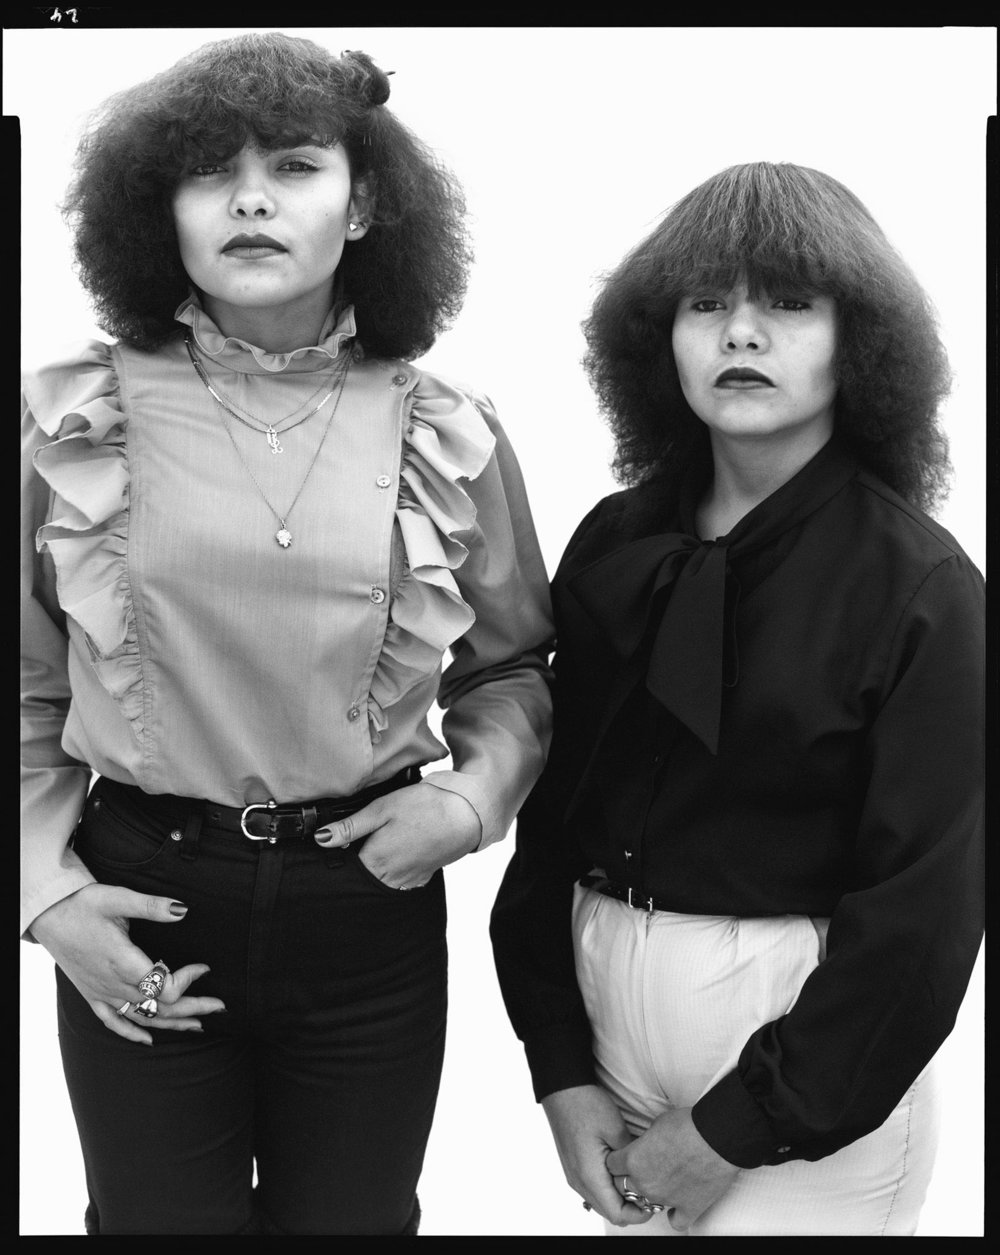 Myrna Sandoval, eighteen-year-old, and and her sister Claudia, fourteen-year-old, El Paso, Texas, April 20, 1982